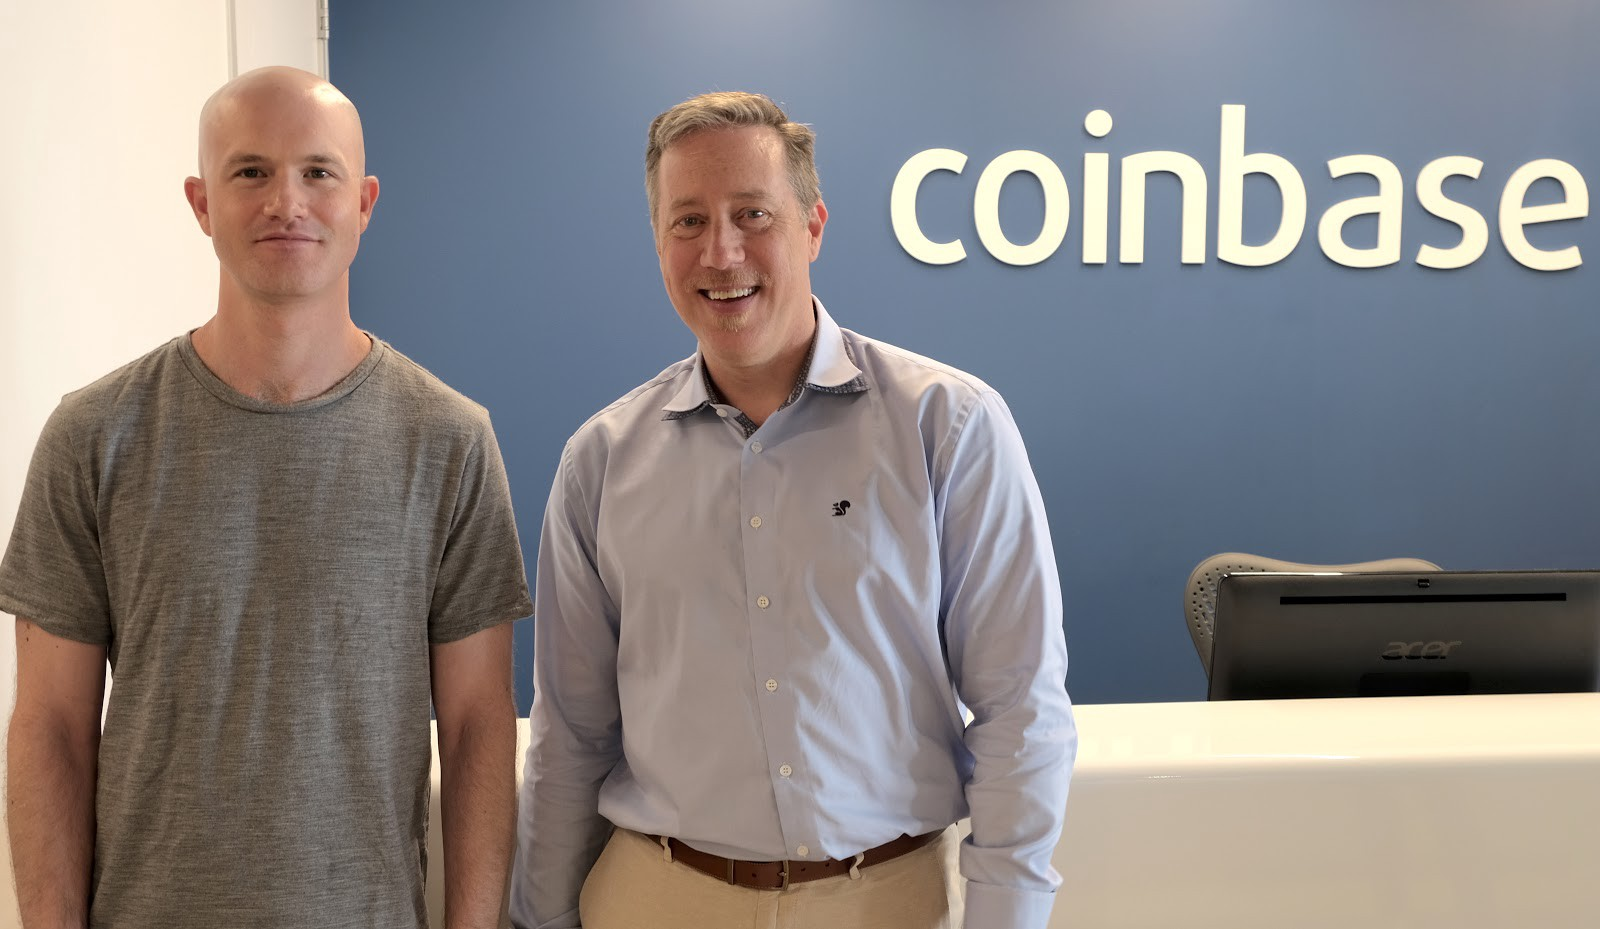 VP of Engineering Tim Wagner Becomes Latest Exec to Leave Coinbase - CoinDesk